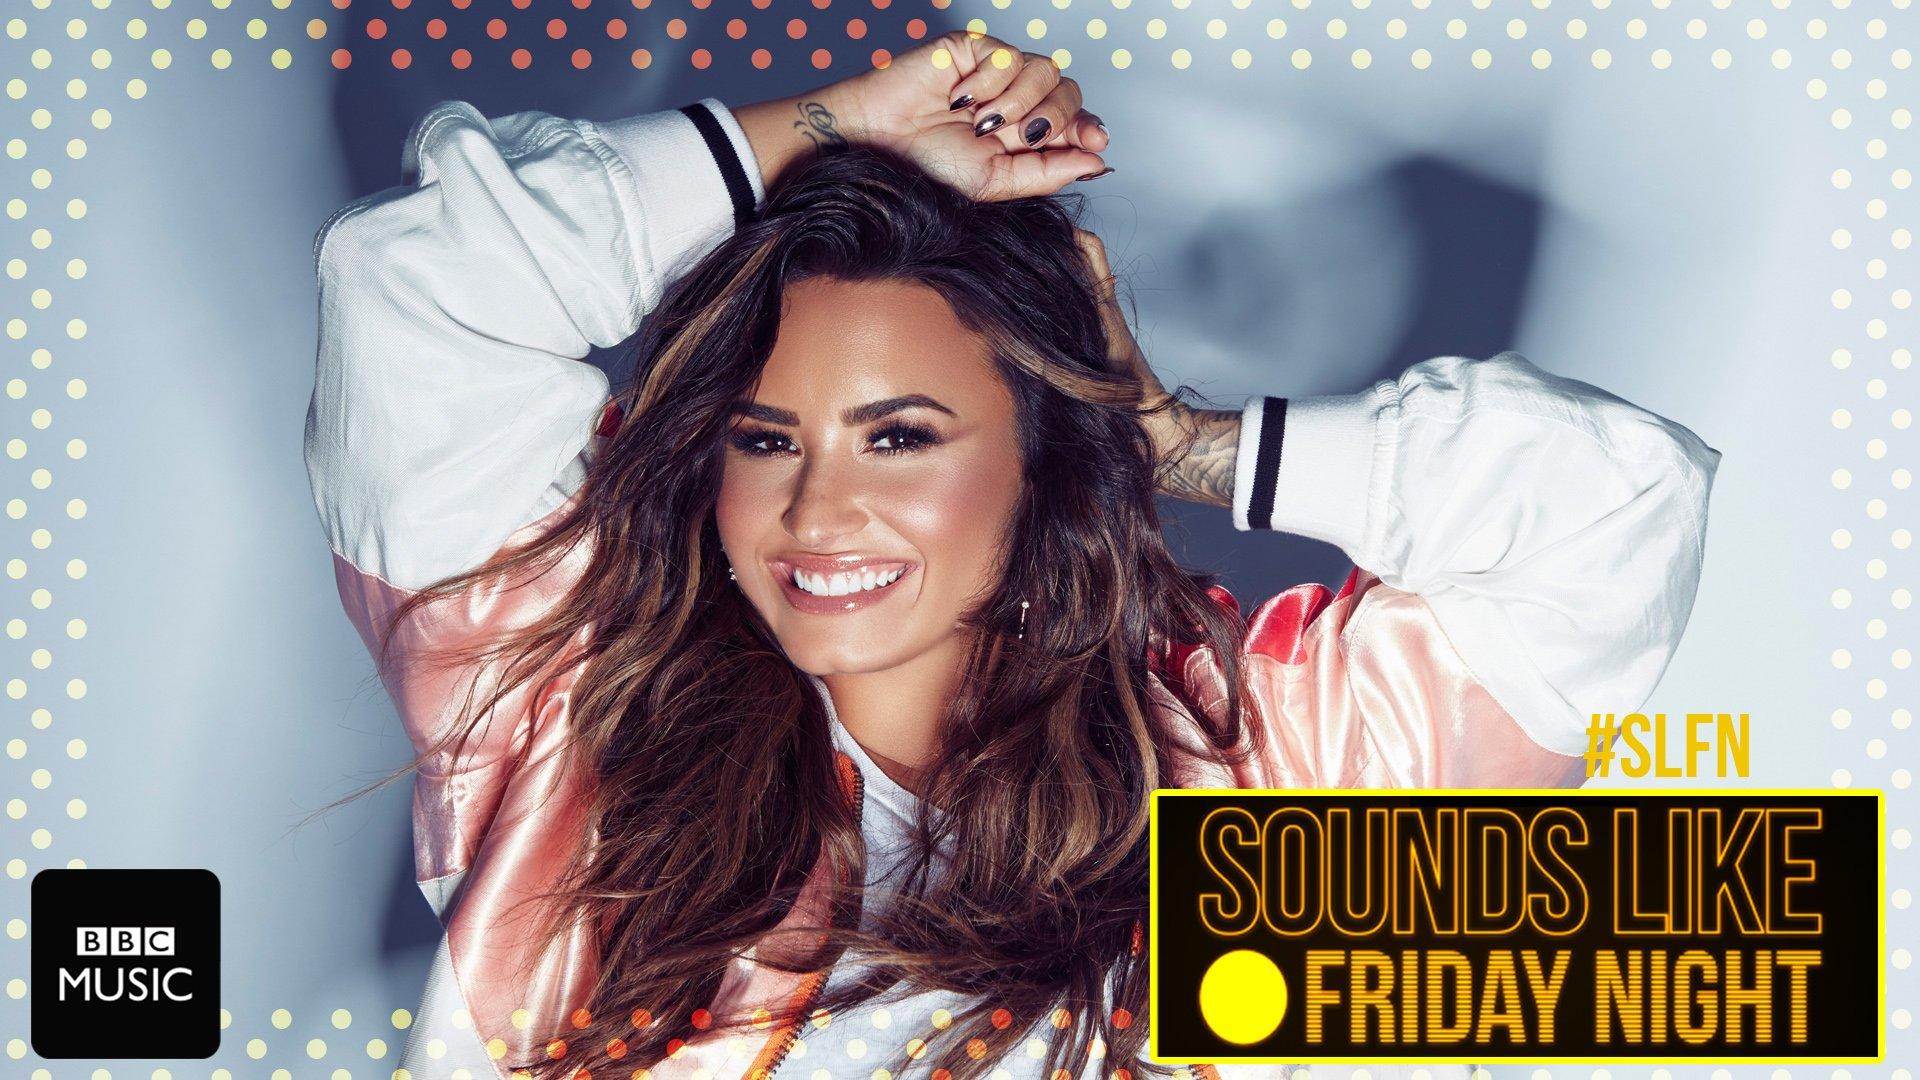 Can't wait to guest-host #SoundsLikeFridayNight on @BBCOne tomorrow �� Tune-in at 7:30pm! https://t.co/8690Cy6tjy